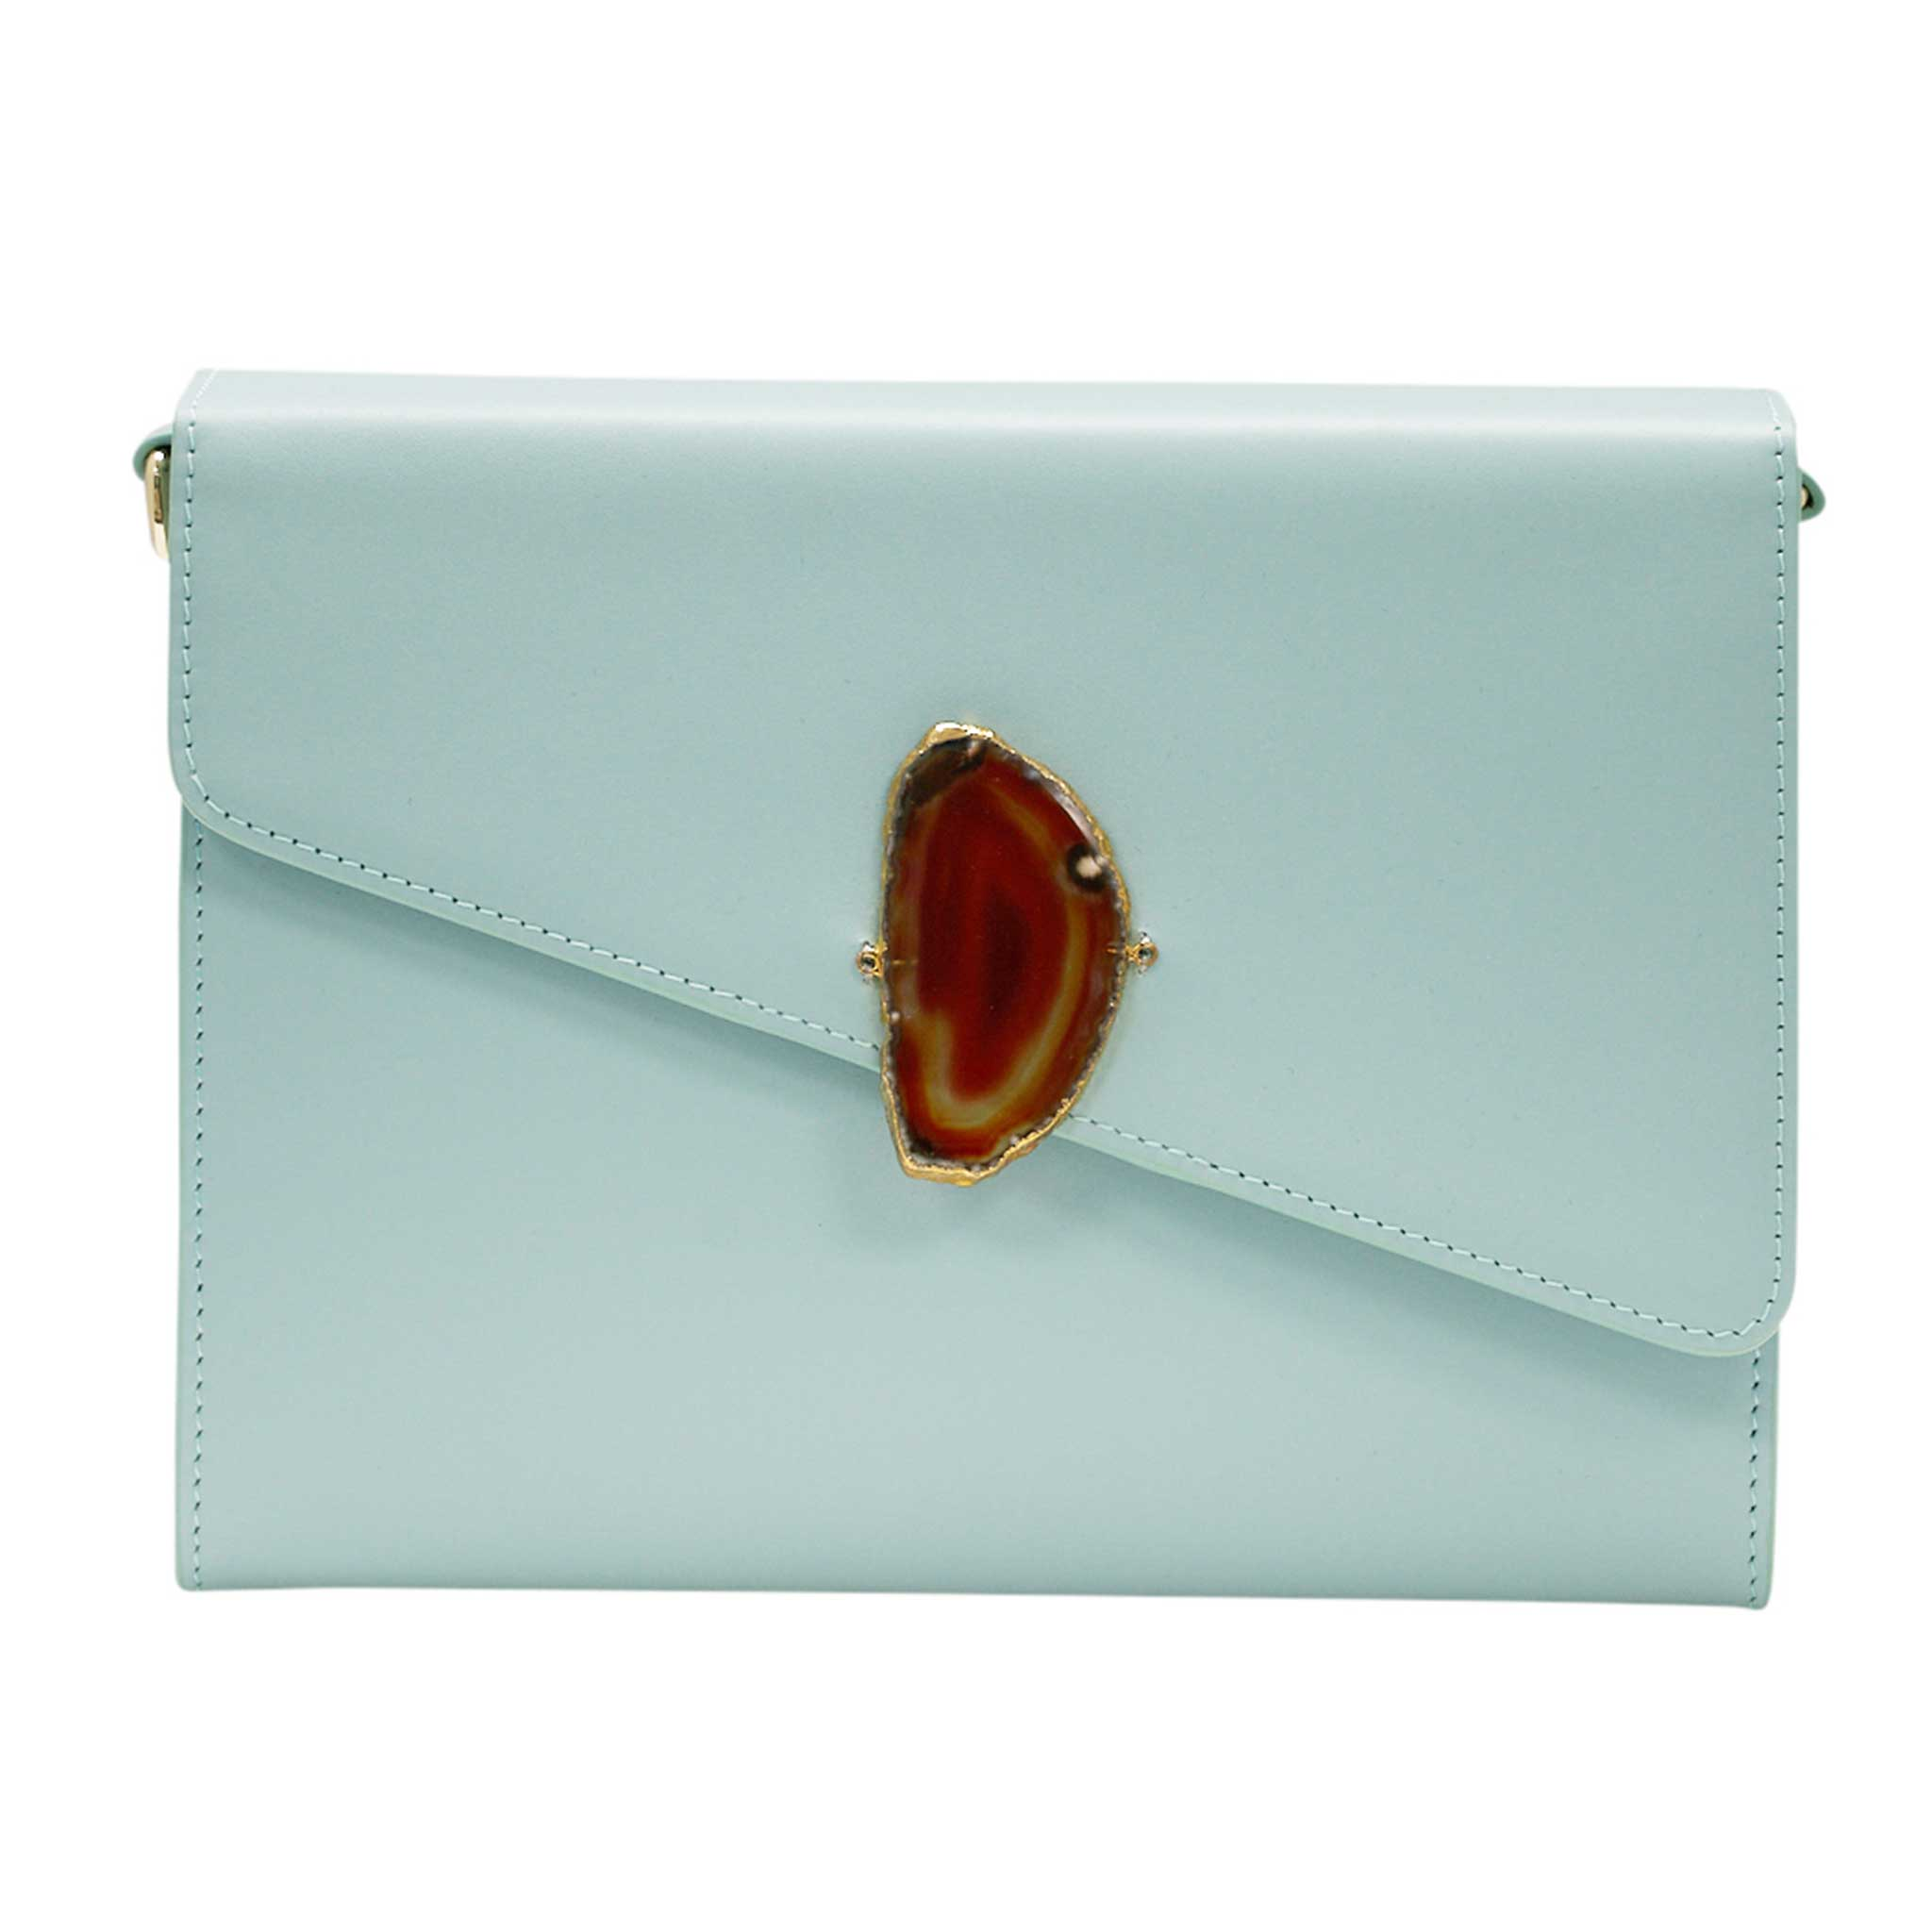 LOVED BAG - MOONSTONE WHITE LEATHER WITH BROWN AGATE - 1.02.004.002